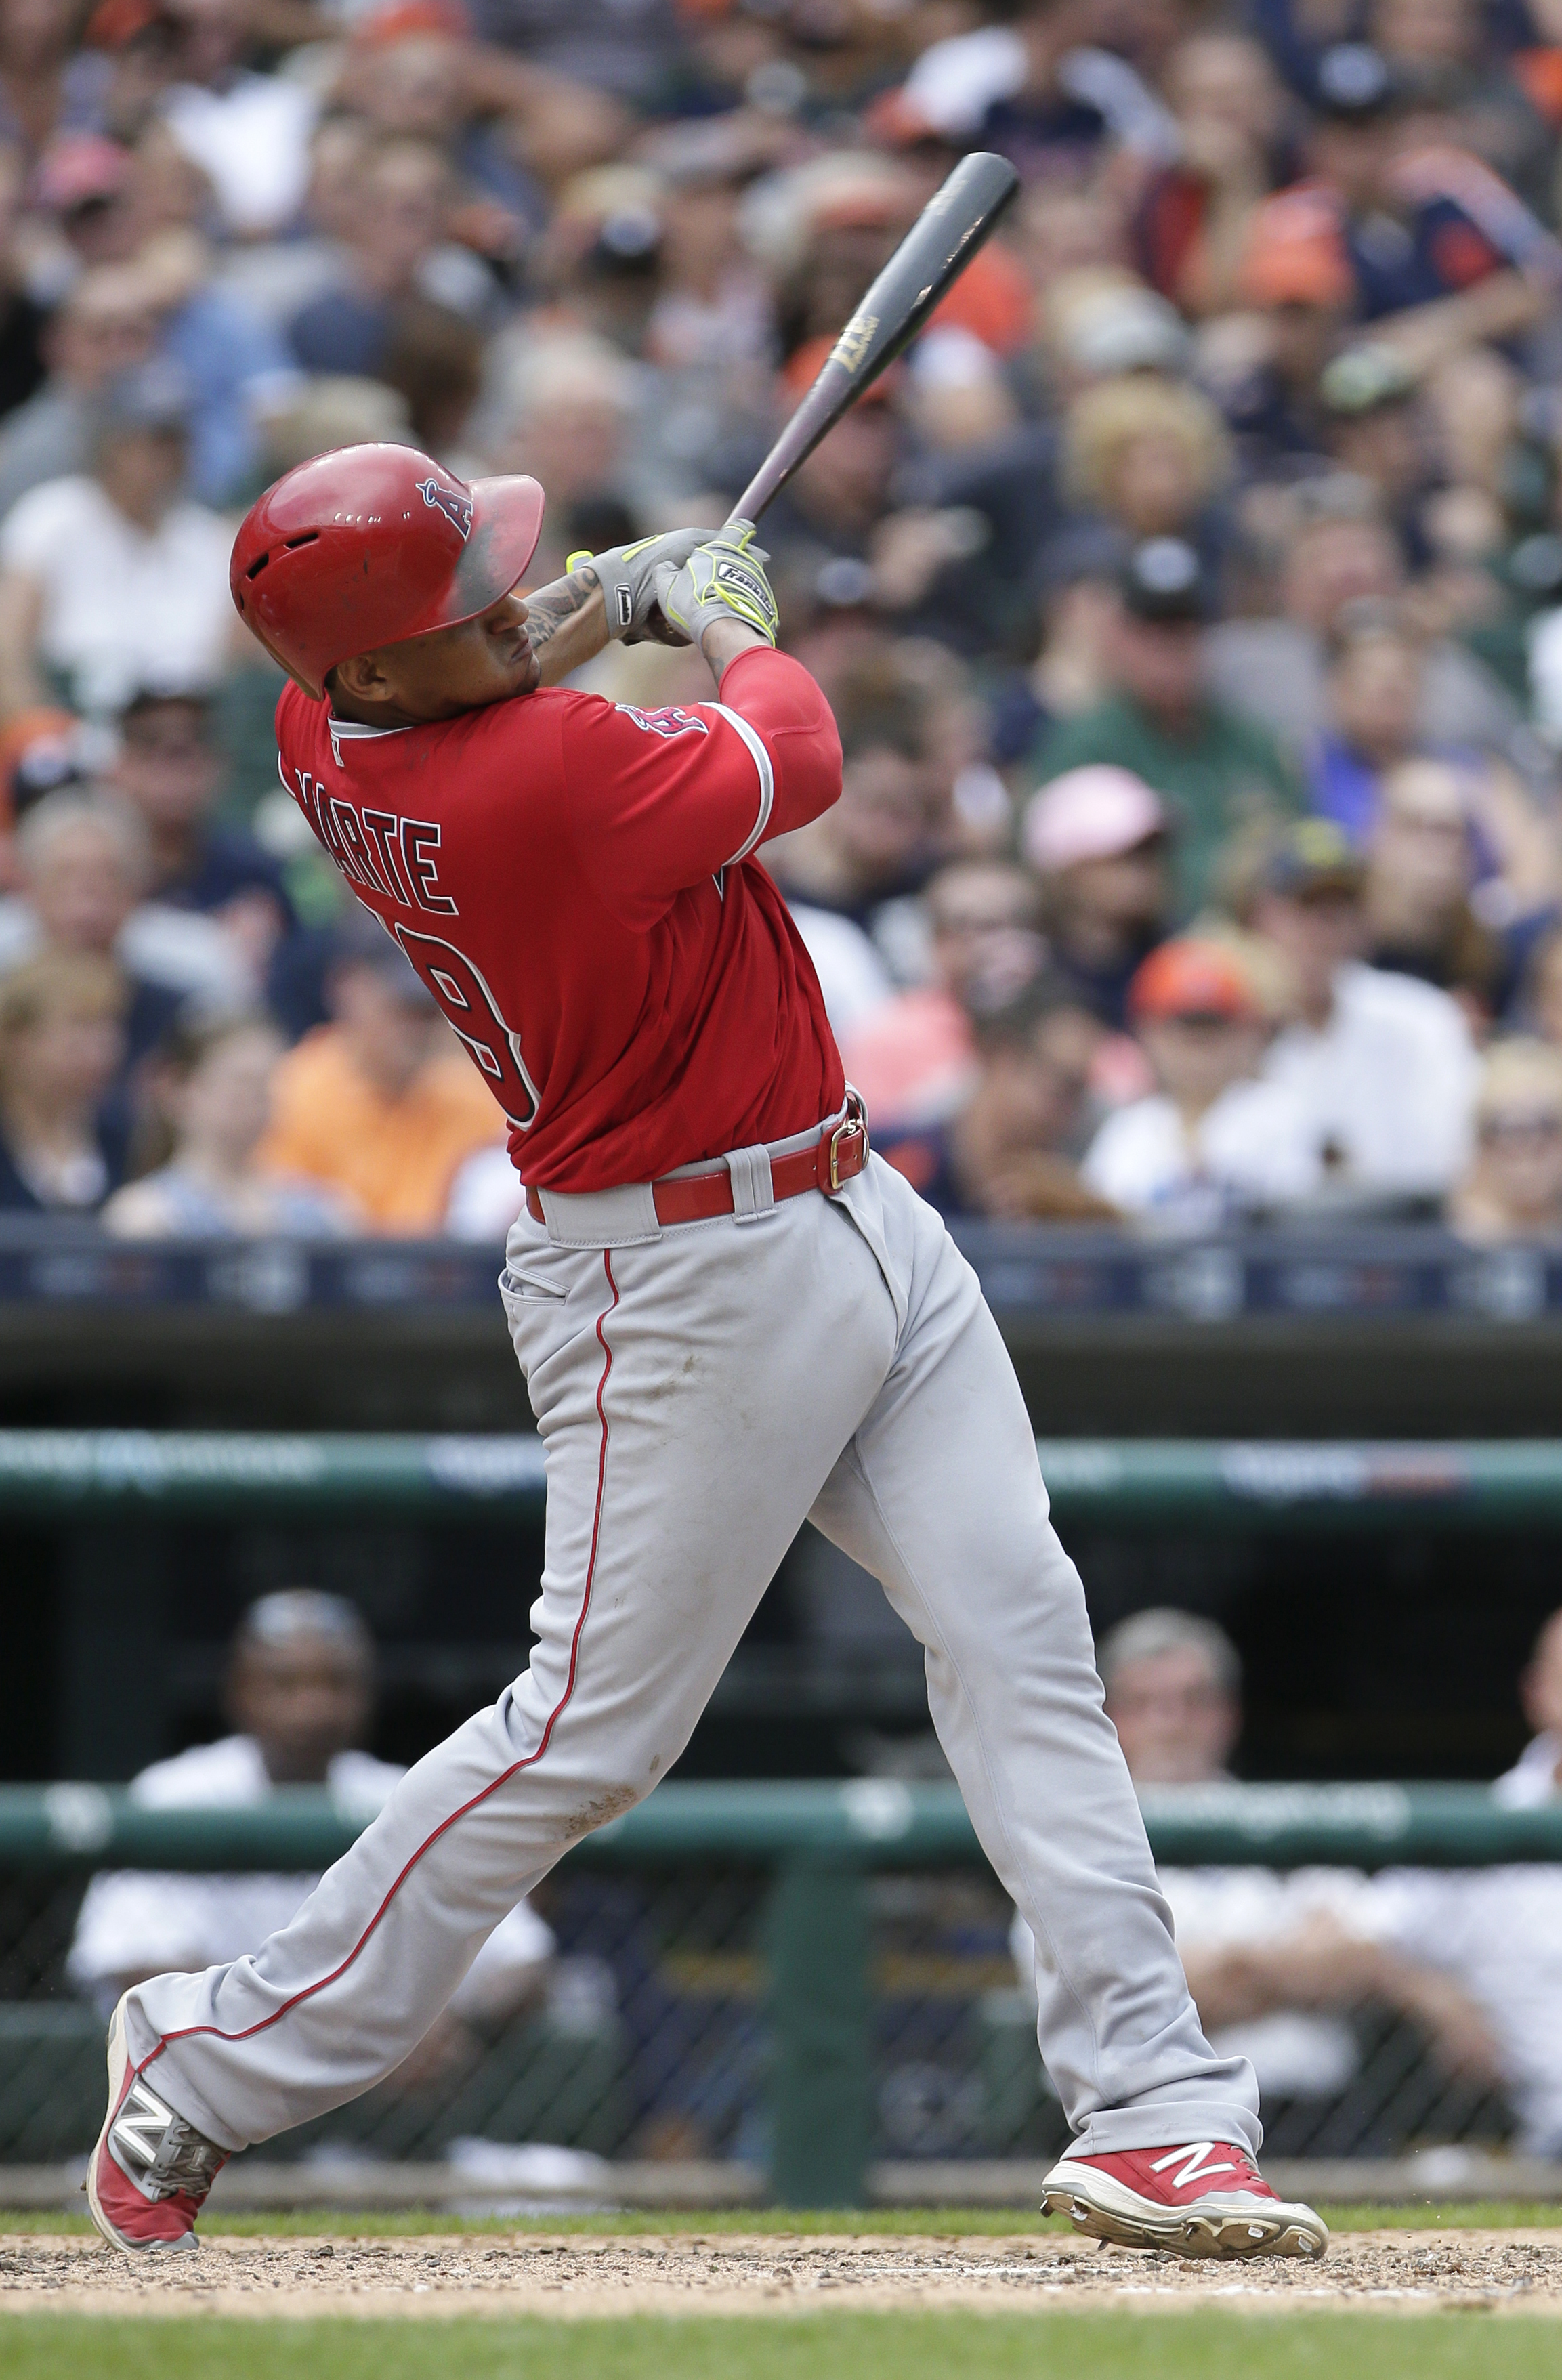 Los Angeles Angels' Jefry Marte hits a sacrifice fly ball to drive in Albert Pujols against the Detroit Tigers during the sixth inning of a baseball game Sunday, Aug. 28, 2016, in Detroit. (AP Photo/Duane Burleson)